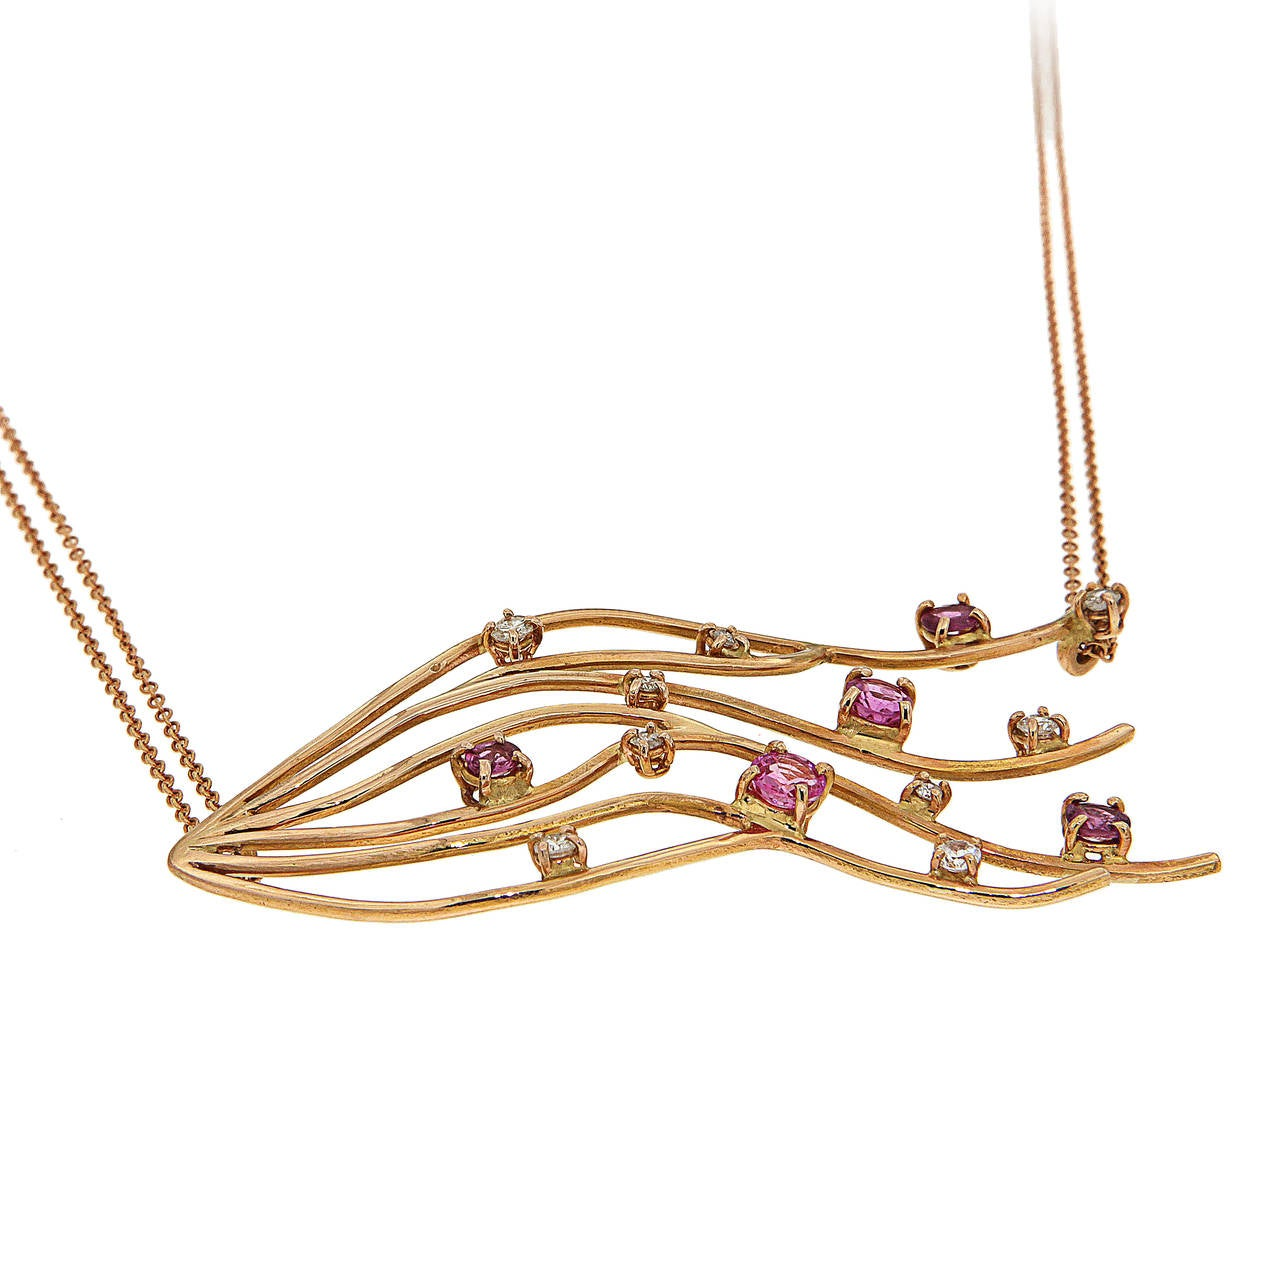 Rose Gold 18k Necklace with 5 Rubies 1.50 ctw and 8 Diamonds 0.55 ctw Total Length  48 cm  The Rubies And Diamonds Branches Necklace by Italian designer, Botta Gioielli, is a part of their necklace collection and is inspired by fluid lines.